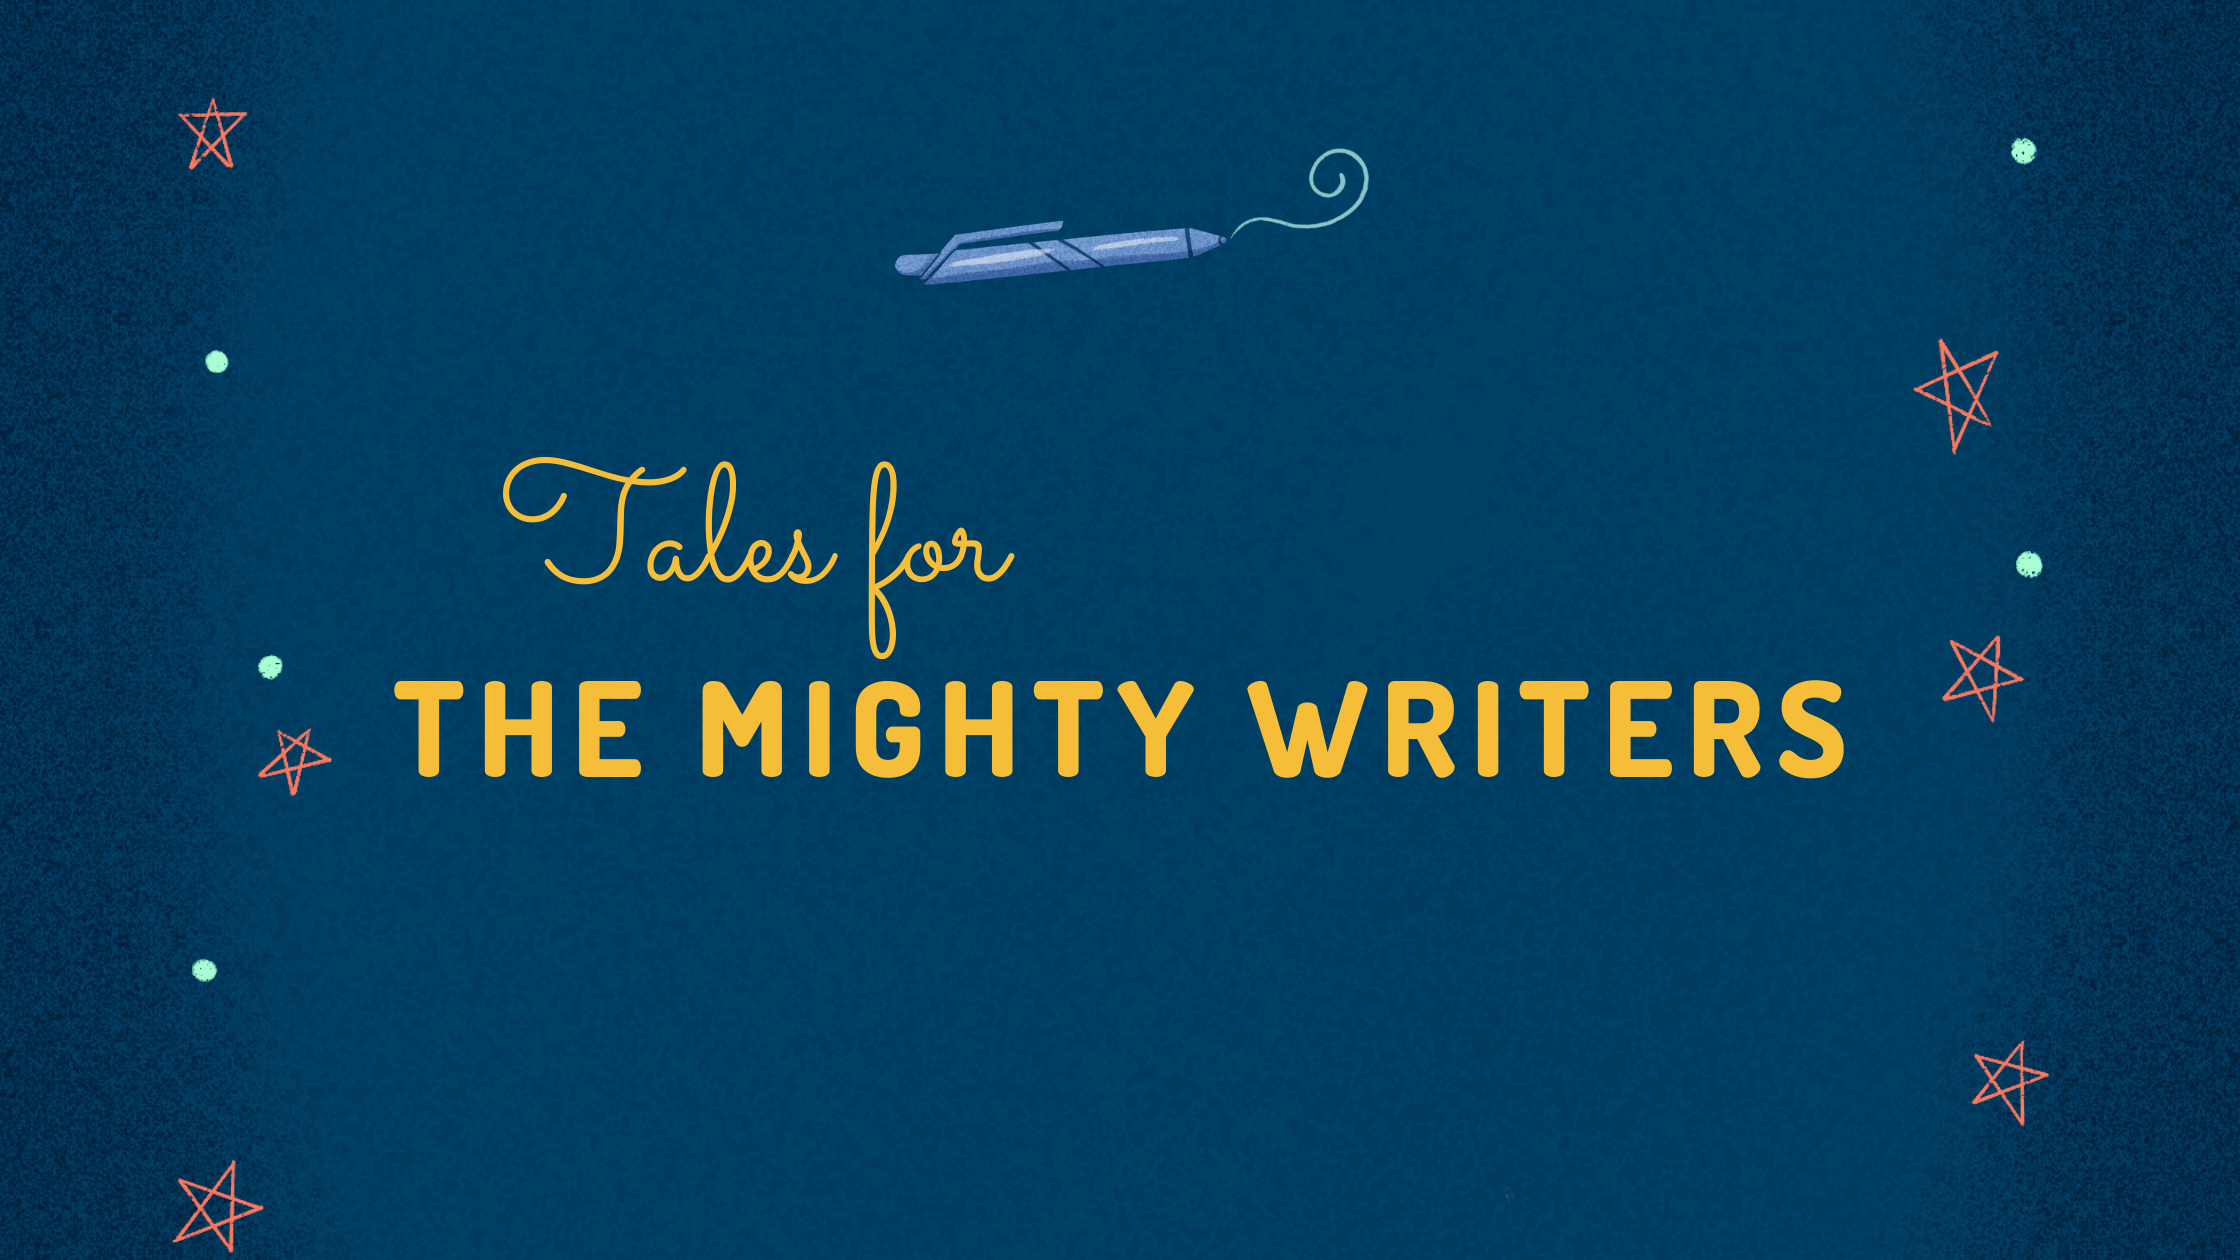 Takes for The Mighty Writers